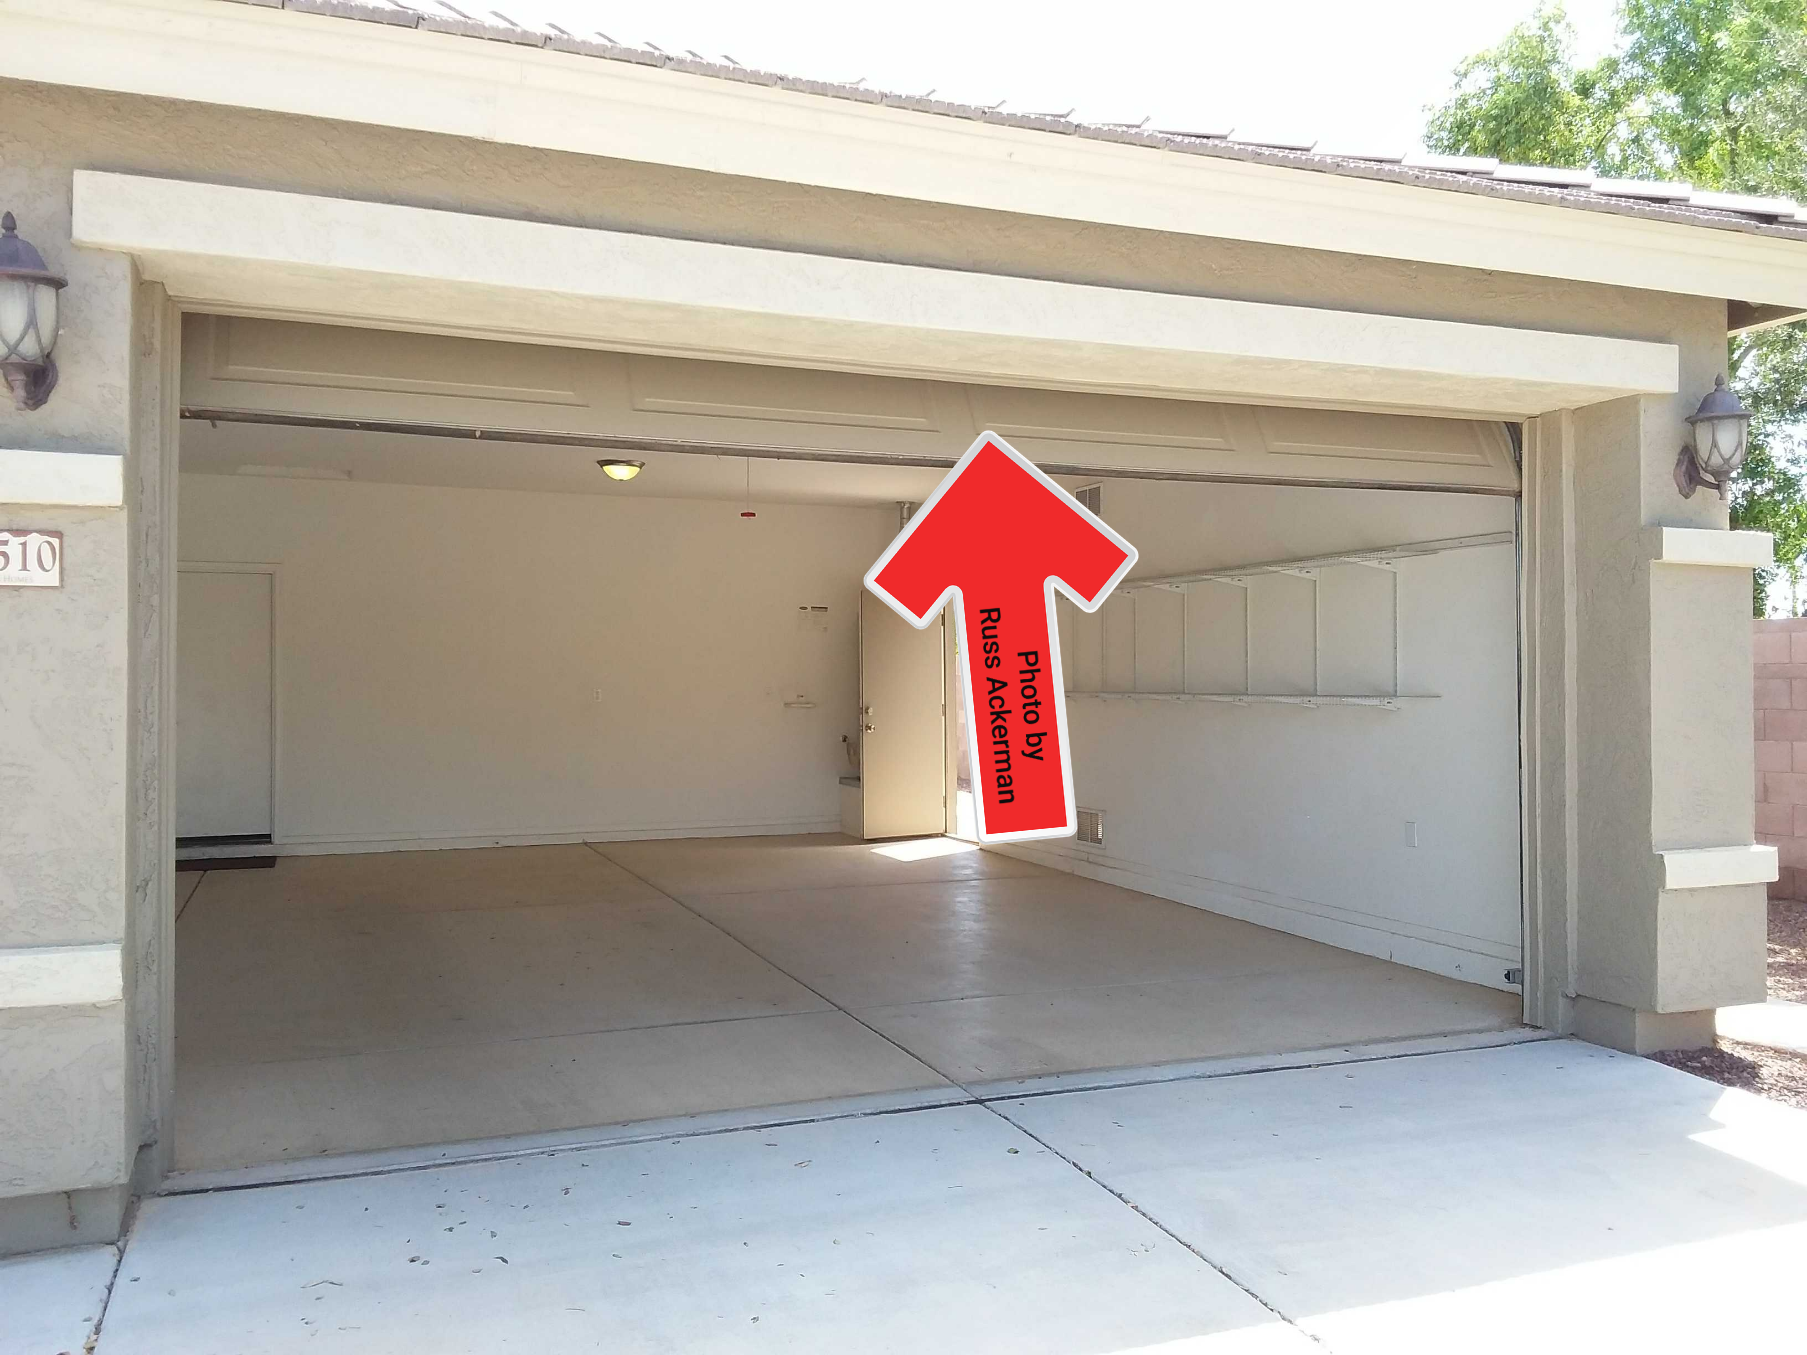 A overhead garage door that does not open fully may damage your vehicle and the door.